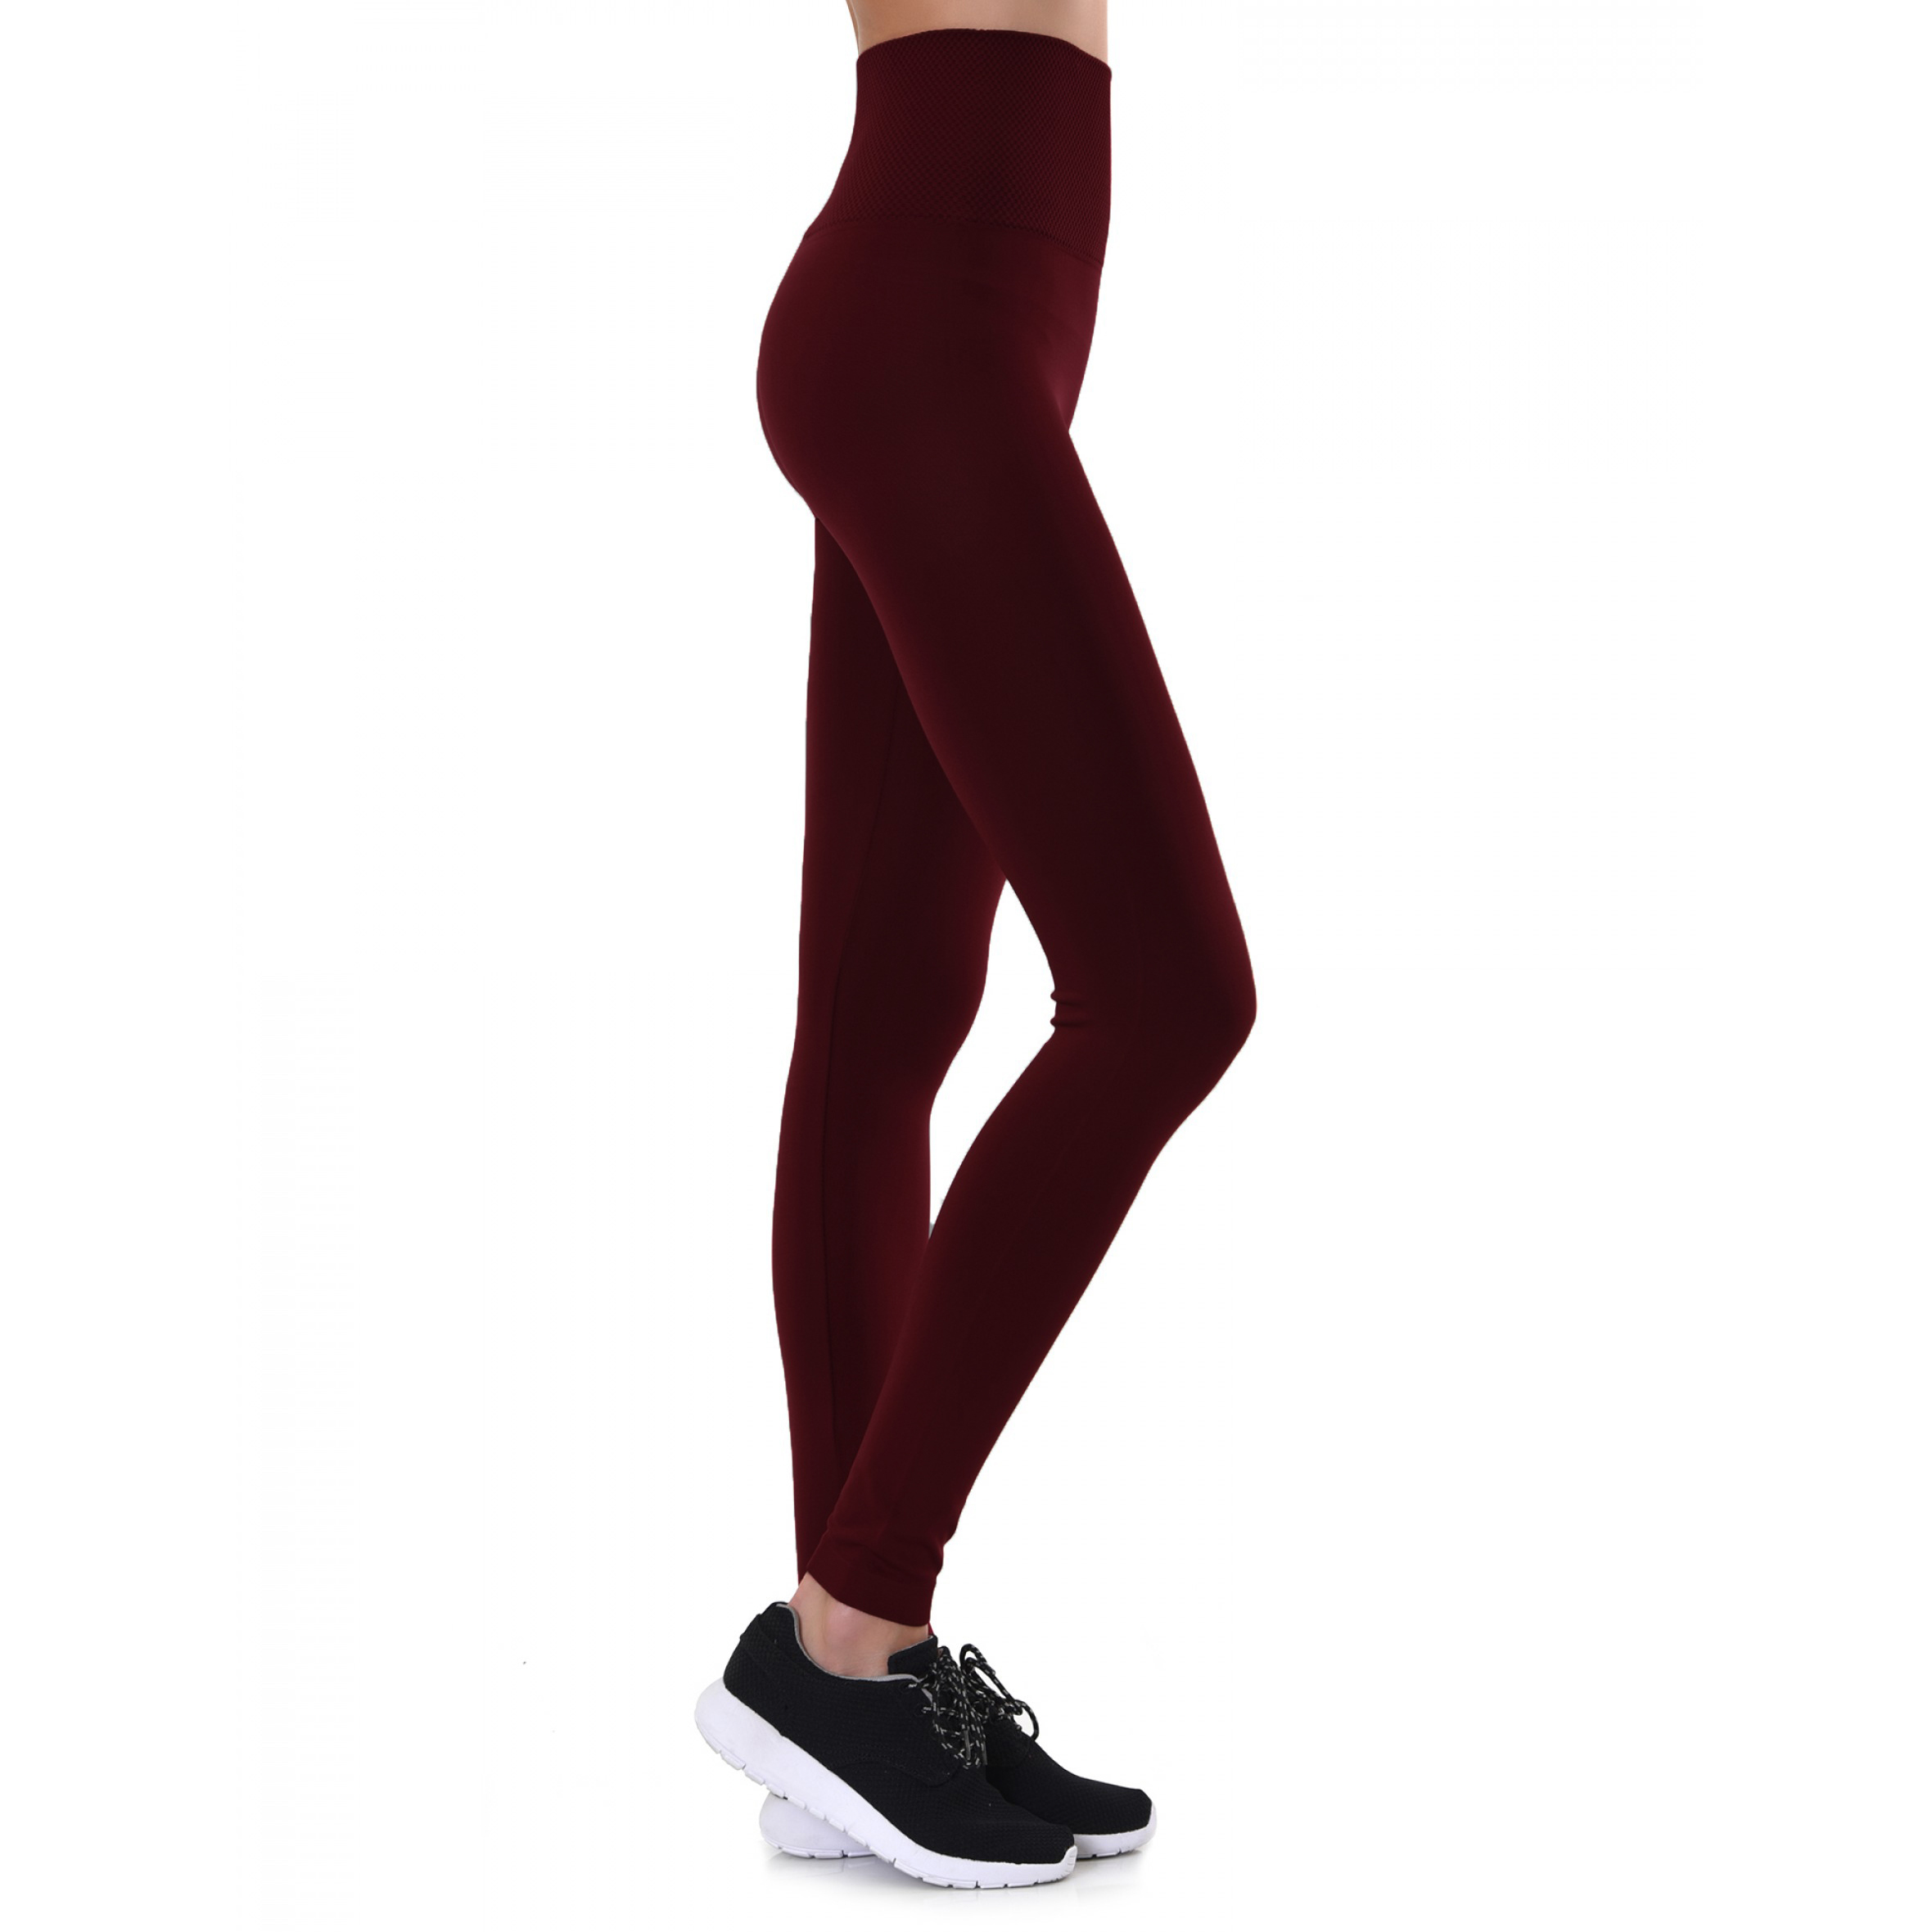 Women s Warm Winter Fleece Lined Leggings - Plus Sizes Available